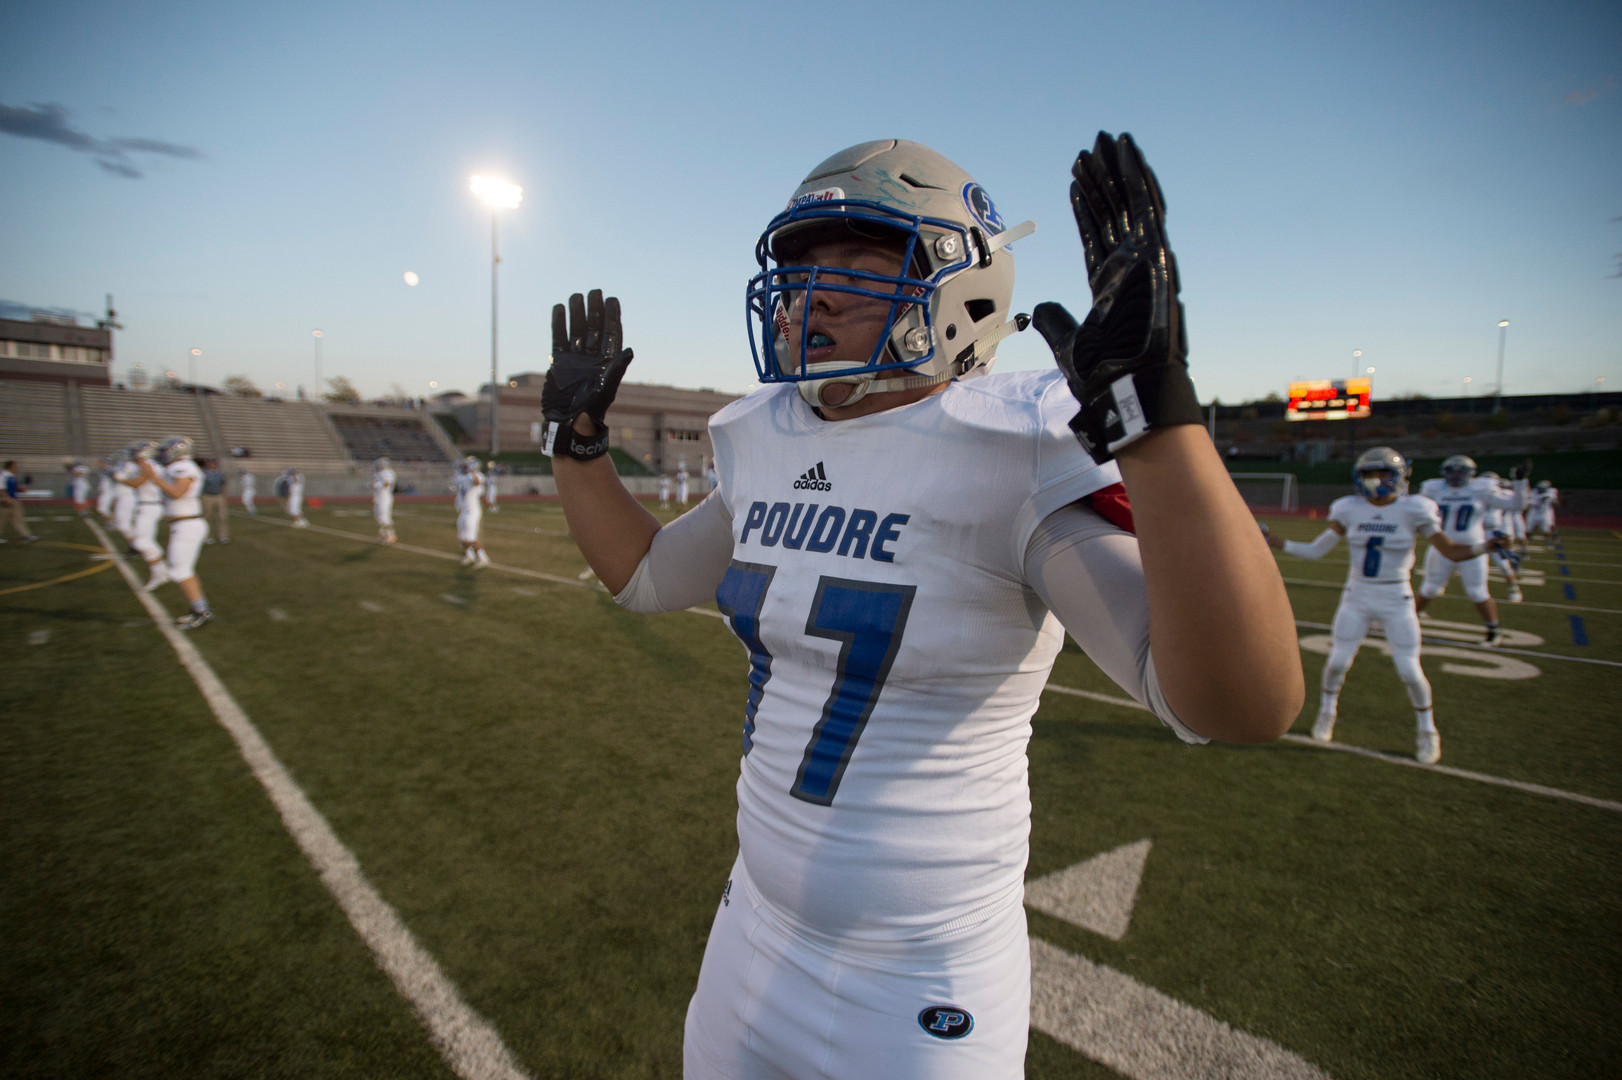 6:20 p.m. - Poudre High School warms up at EchoPark Stadium in Parker before taking on Legend High School Thursday, October 13, 2016.